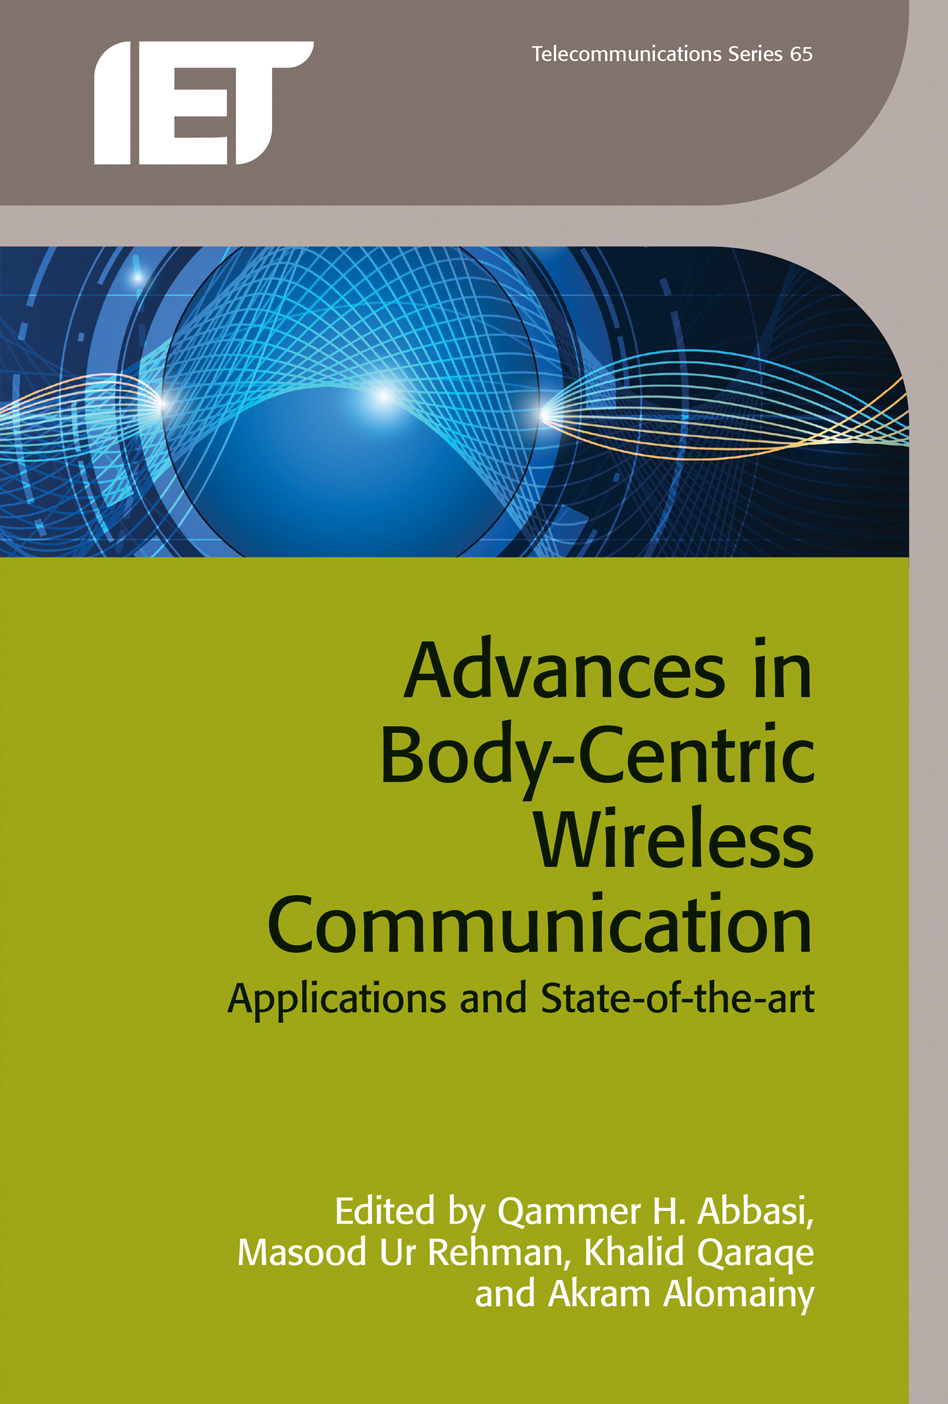 Advances in Body-Centric Wireless Communication, Applications and state-of-the-art